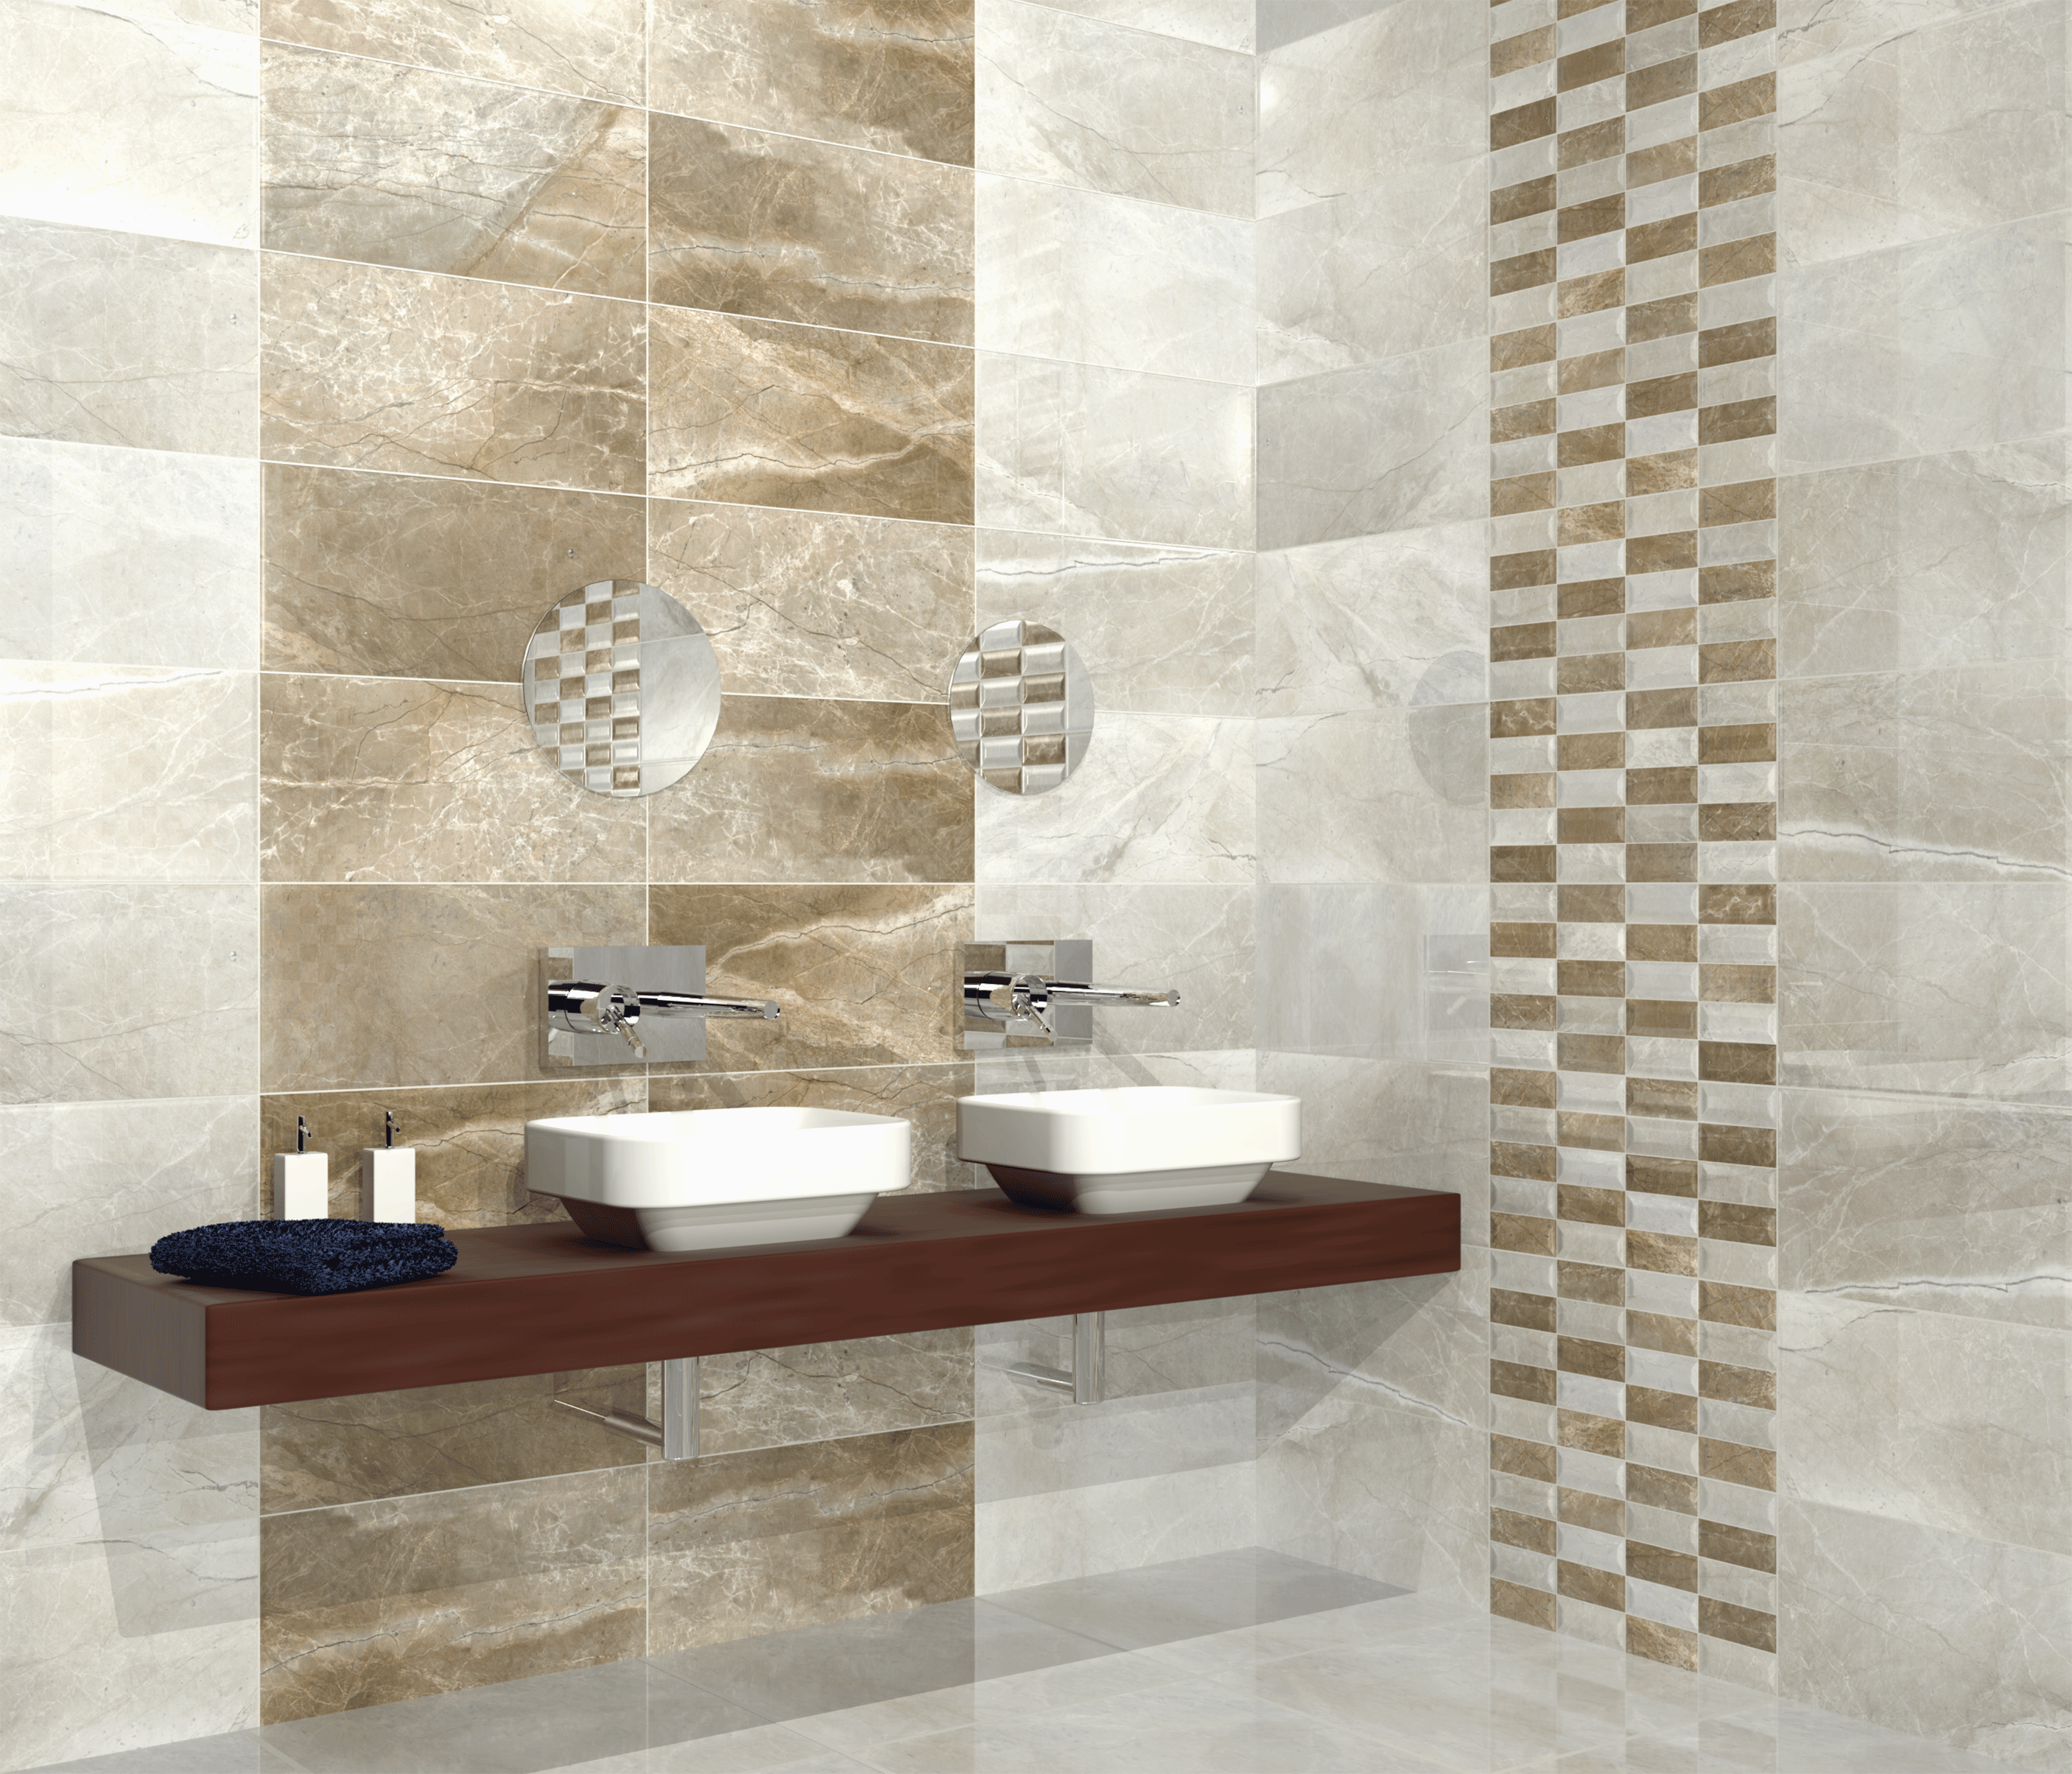 Bathroom Wall latest posts under: bathroom wall tile | ideas | pinterest | tiles